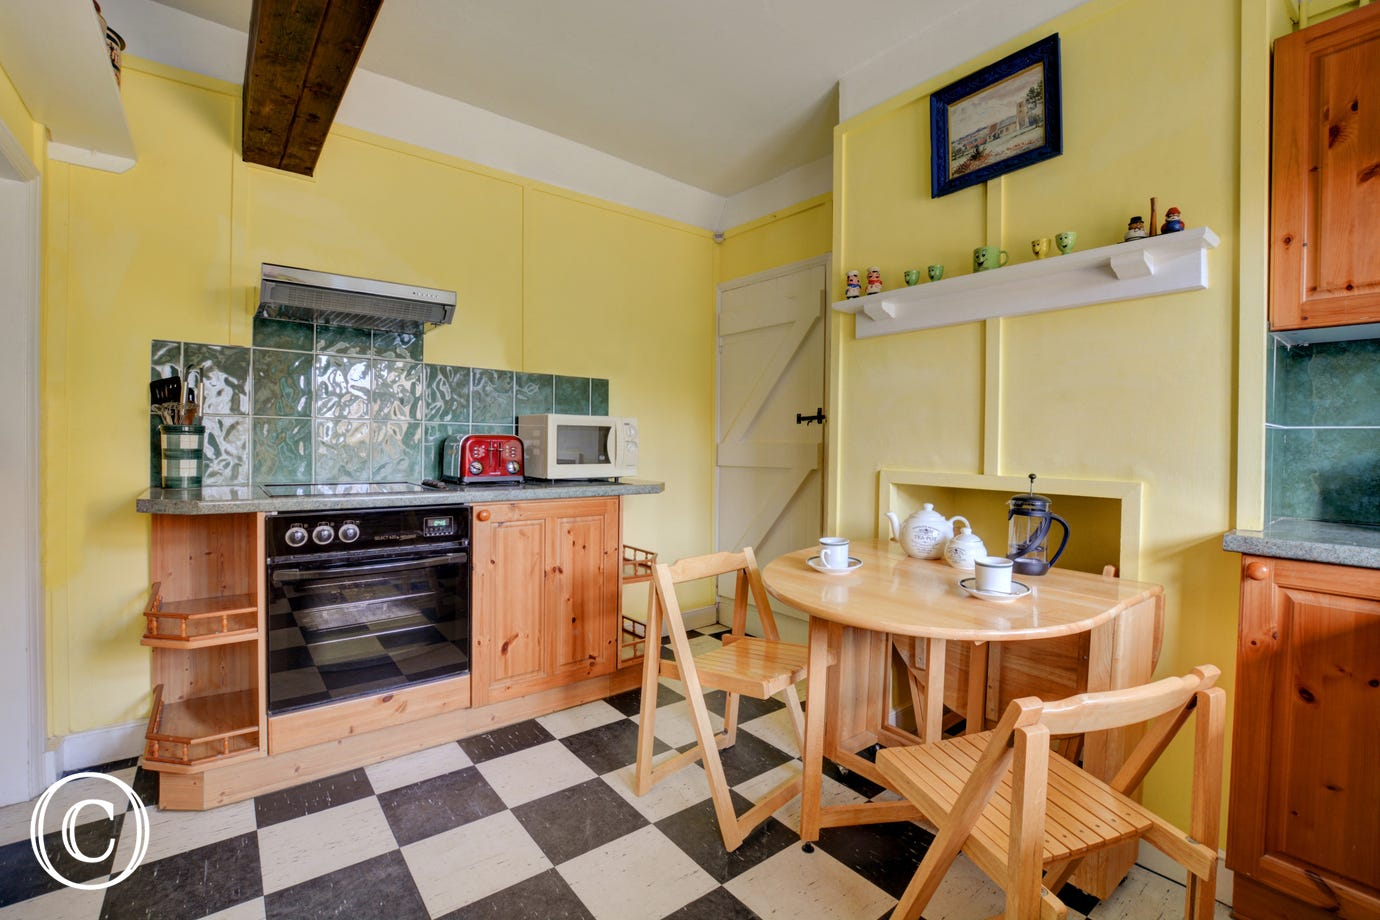 Bright kitchen/dining area with a foldaway table and chairs for family meals